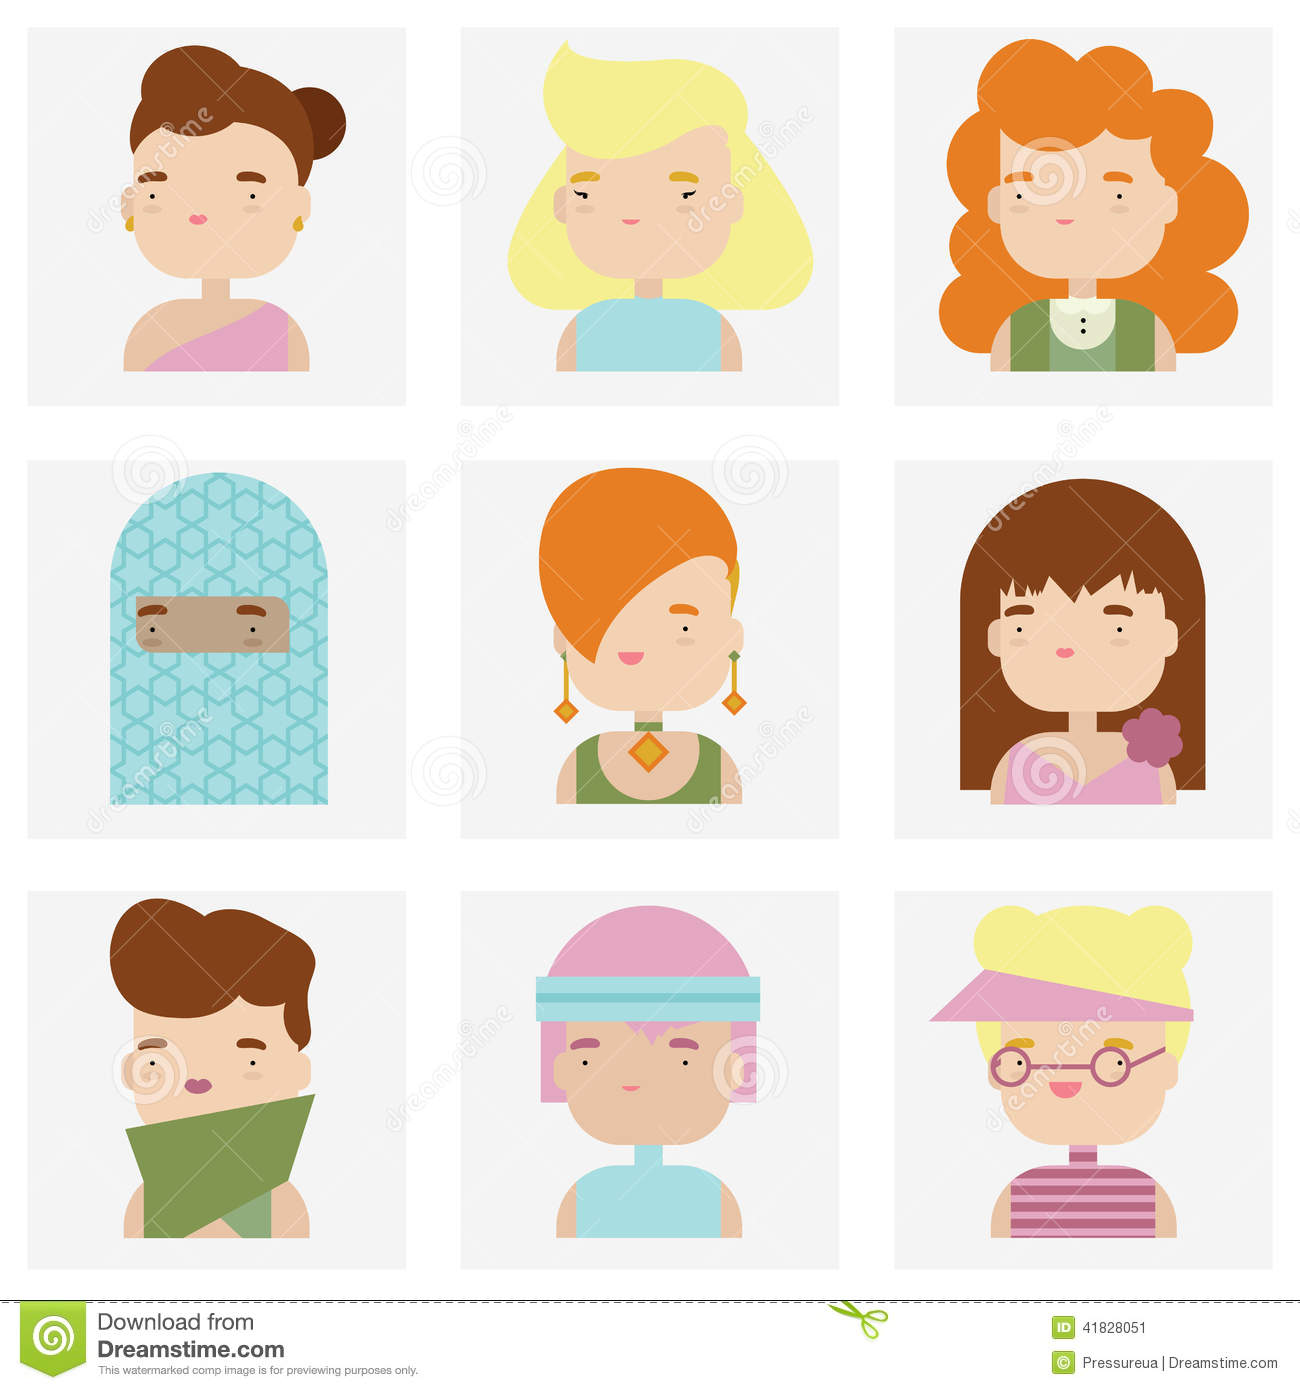 Cute Character Design Illustrator : Cute female character faces flat icons stock vector